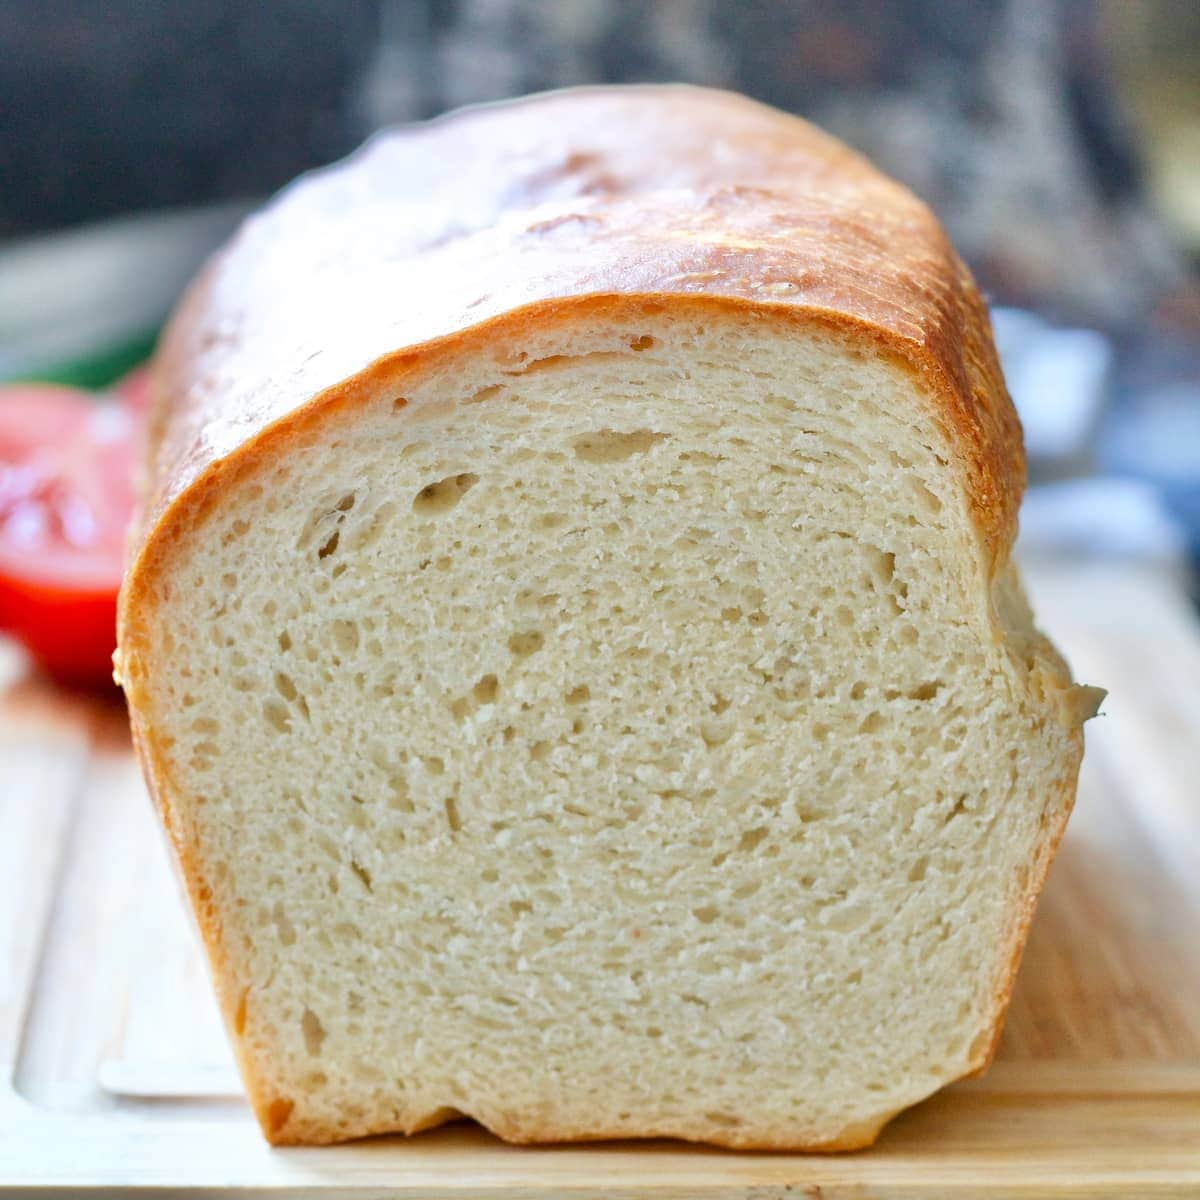 Close up of cut white bread loaf showing off its crumb.